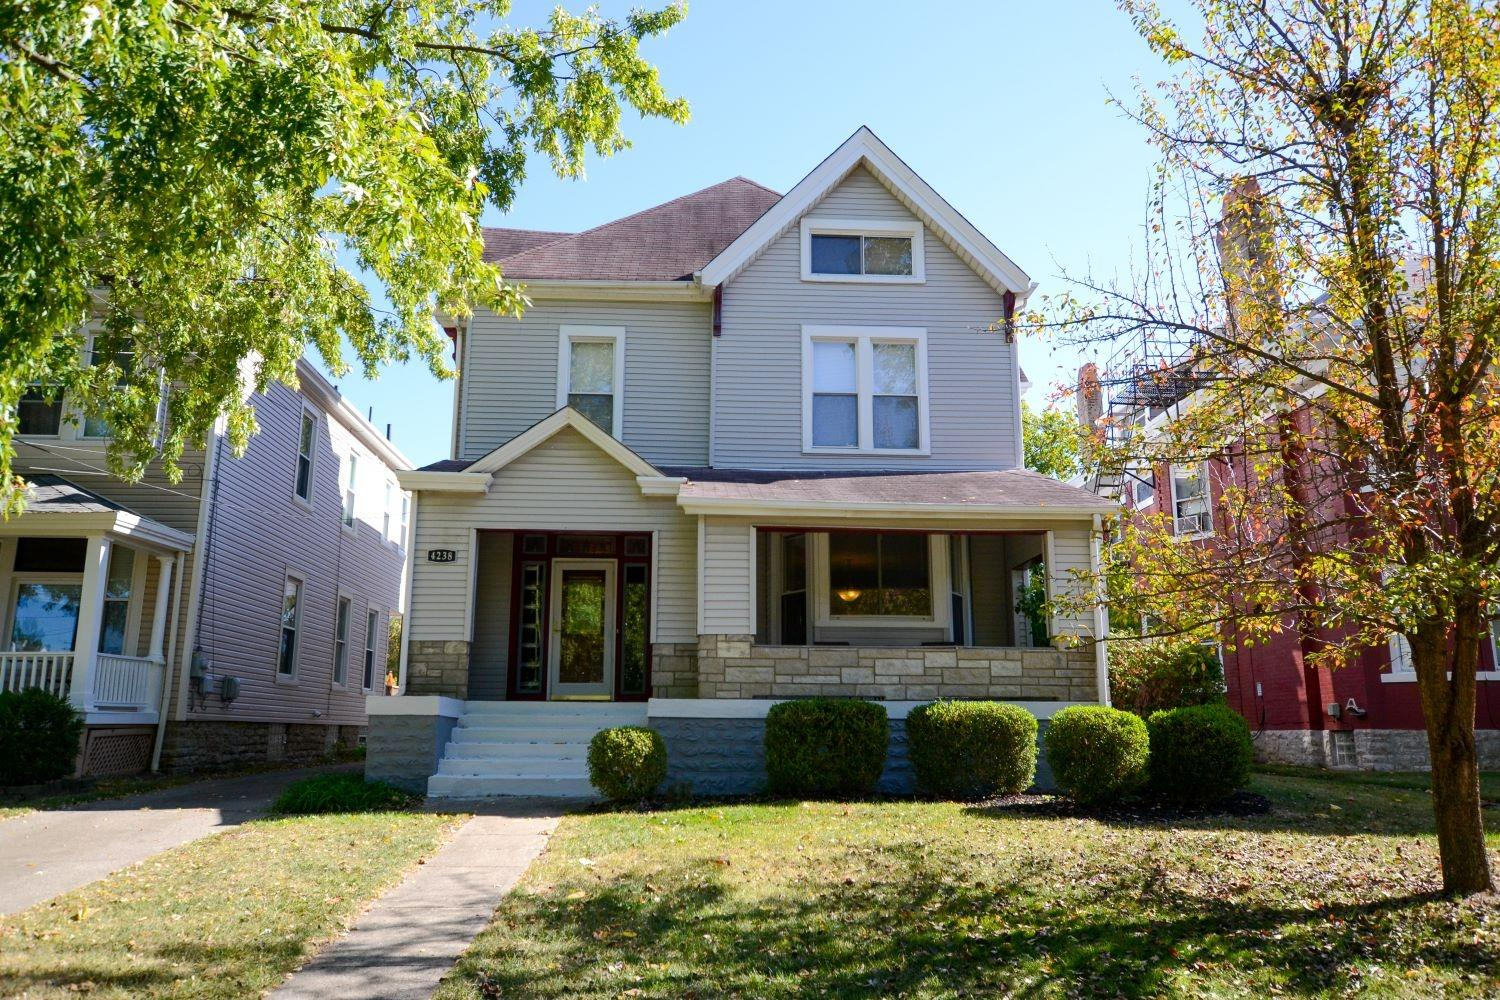 Property for sale at 4238 Floral Avenue, Norwood,  Ohio 45212